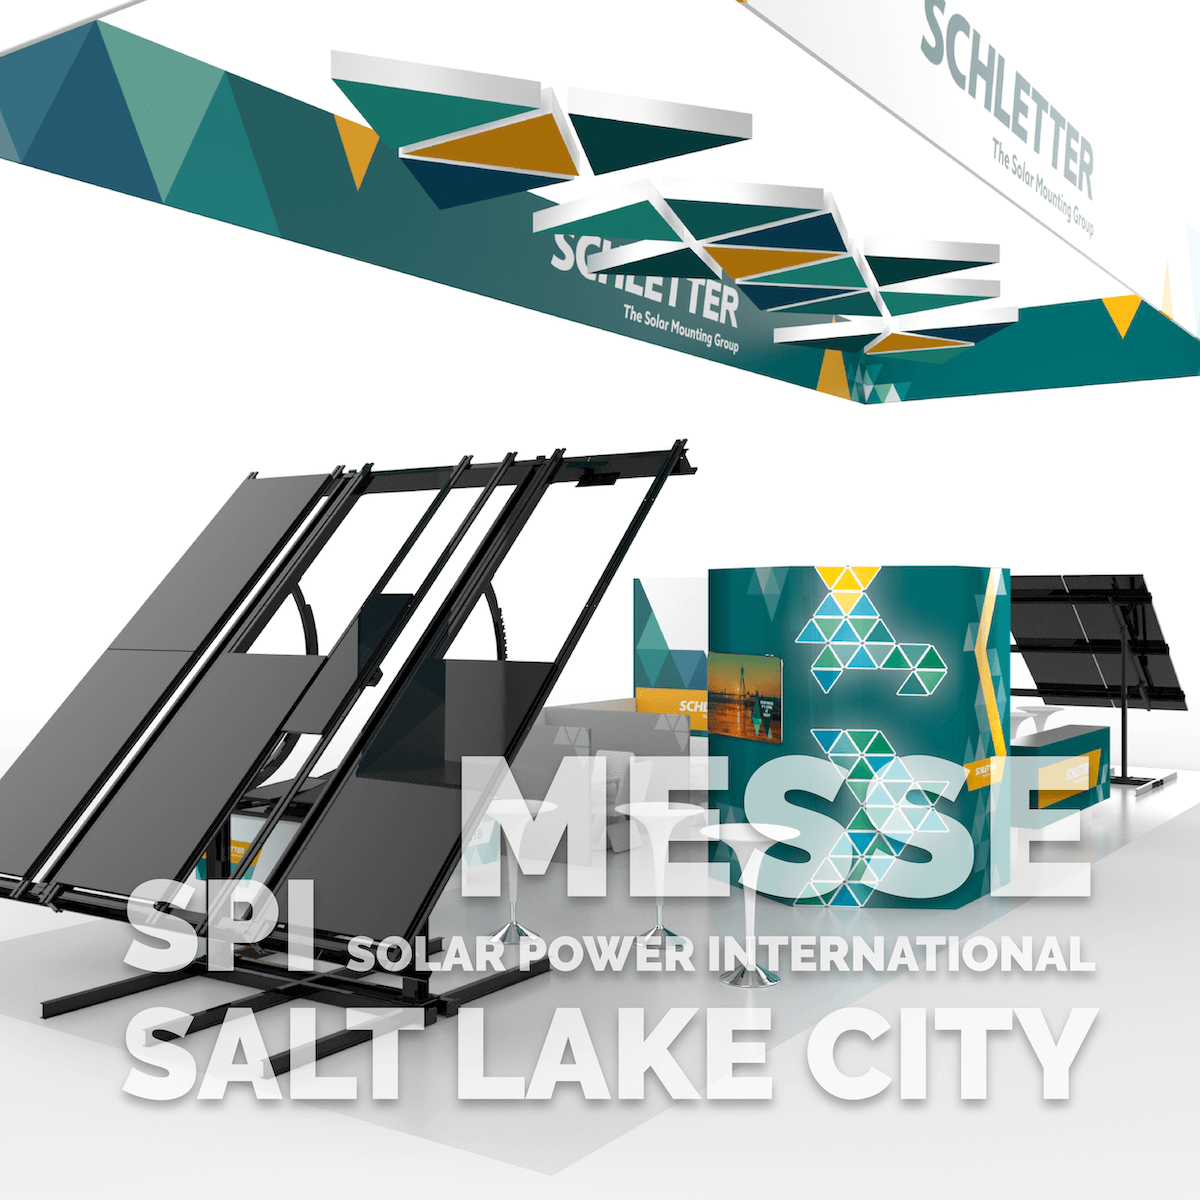 geschmacksRaum_WERBEAGENTUR_Schletter_Solar_GmbH_Messeplanung_Konzeption_und_Standdesign_fuer_die_Solar_Power_International_in_Salt_Lake_City-t